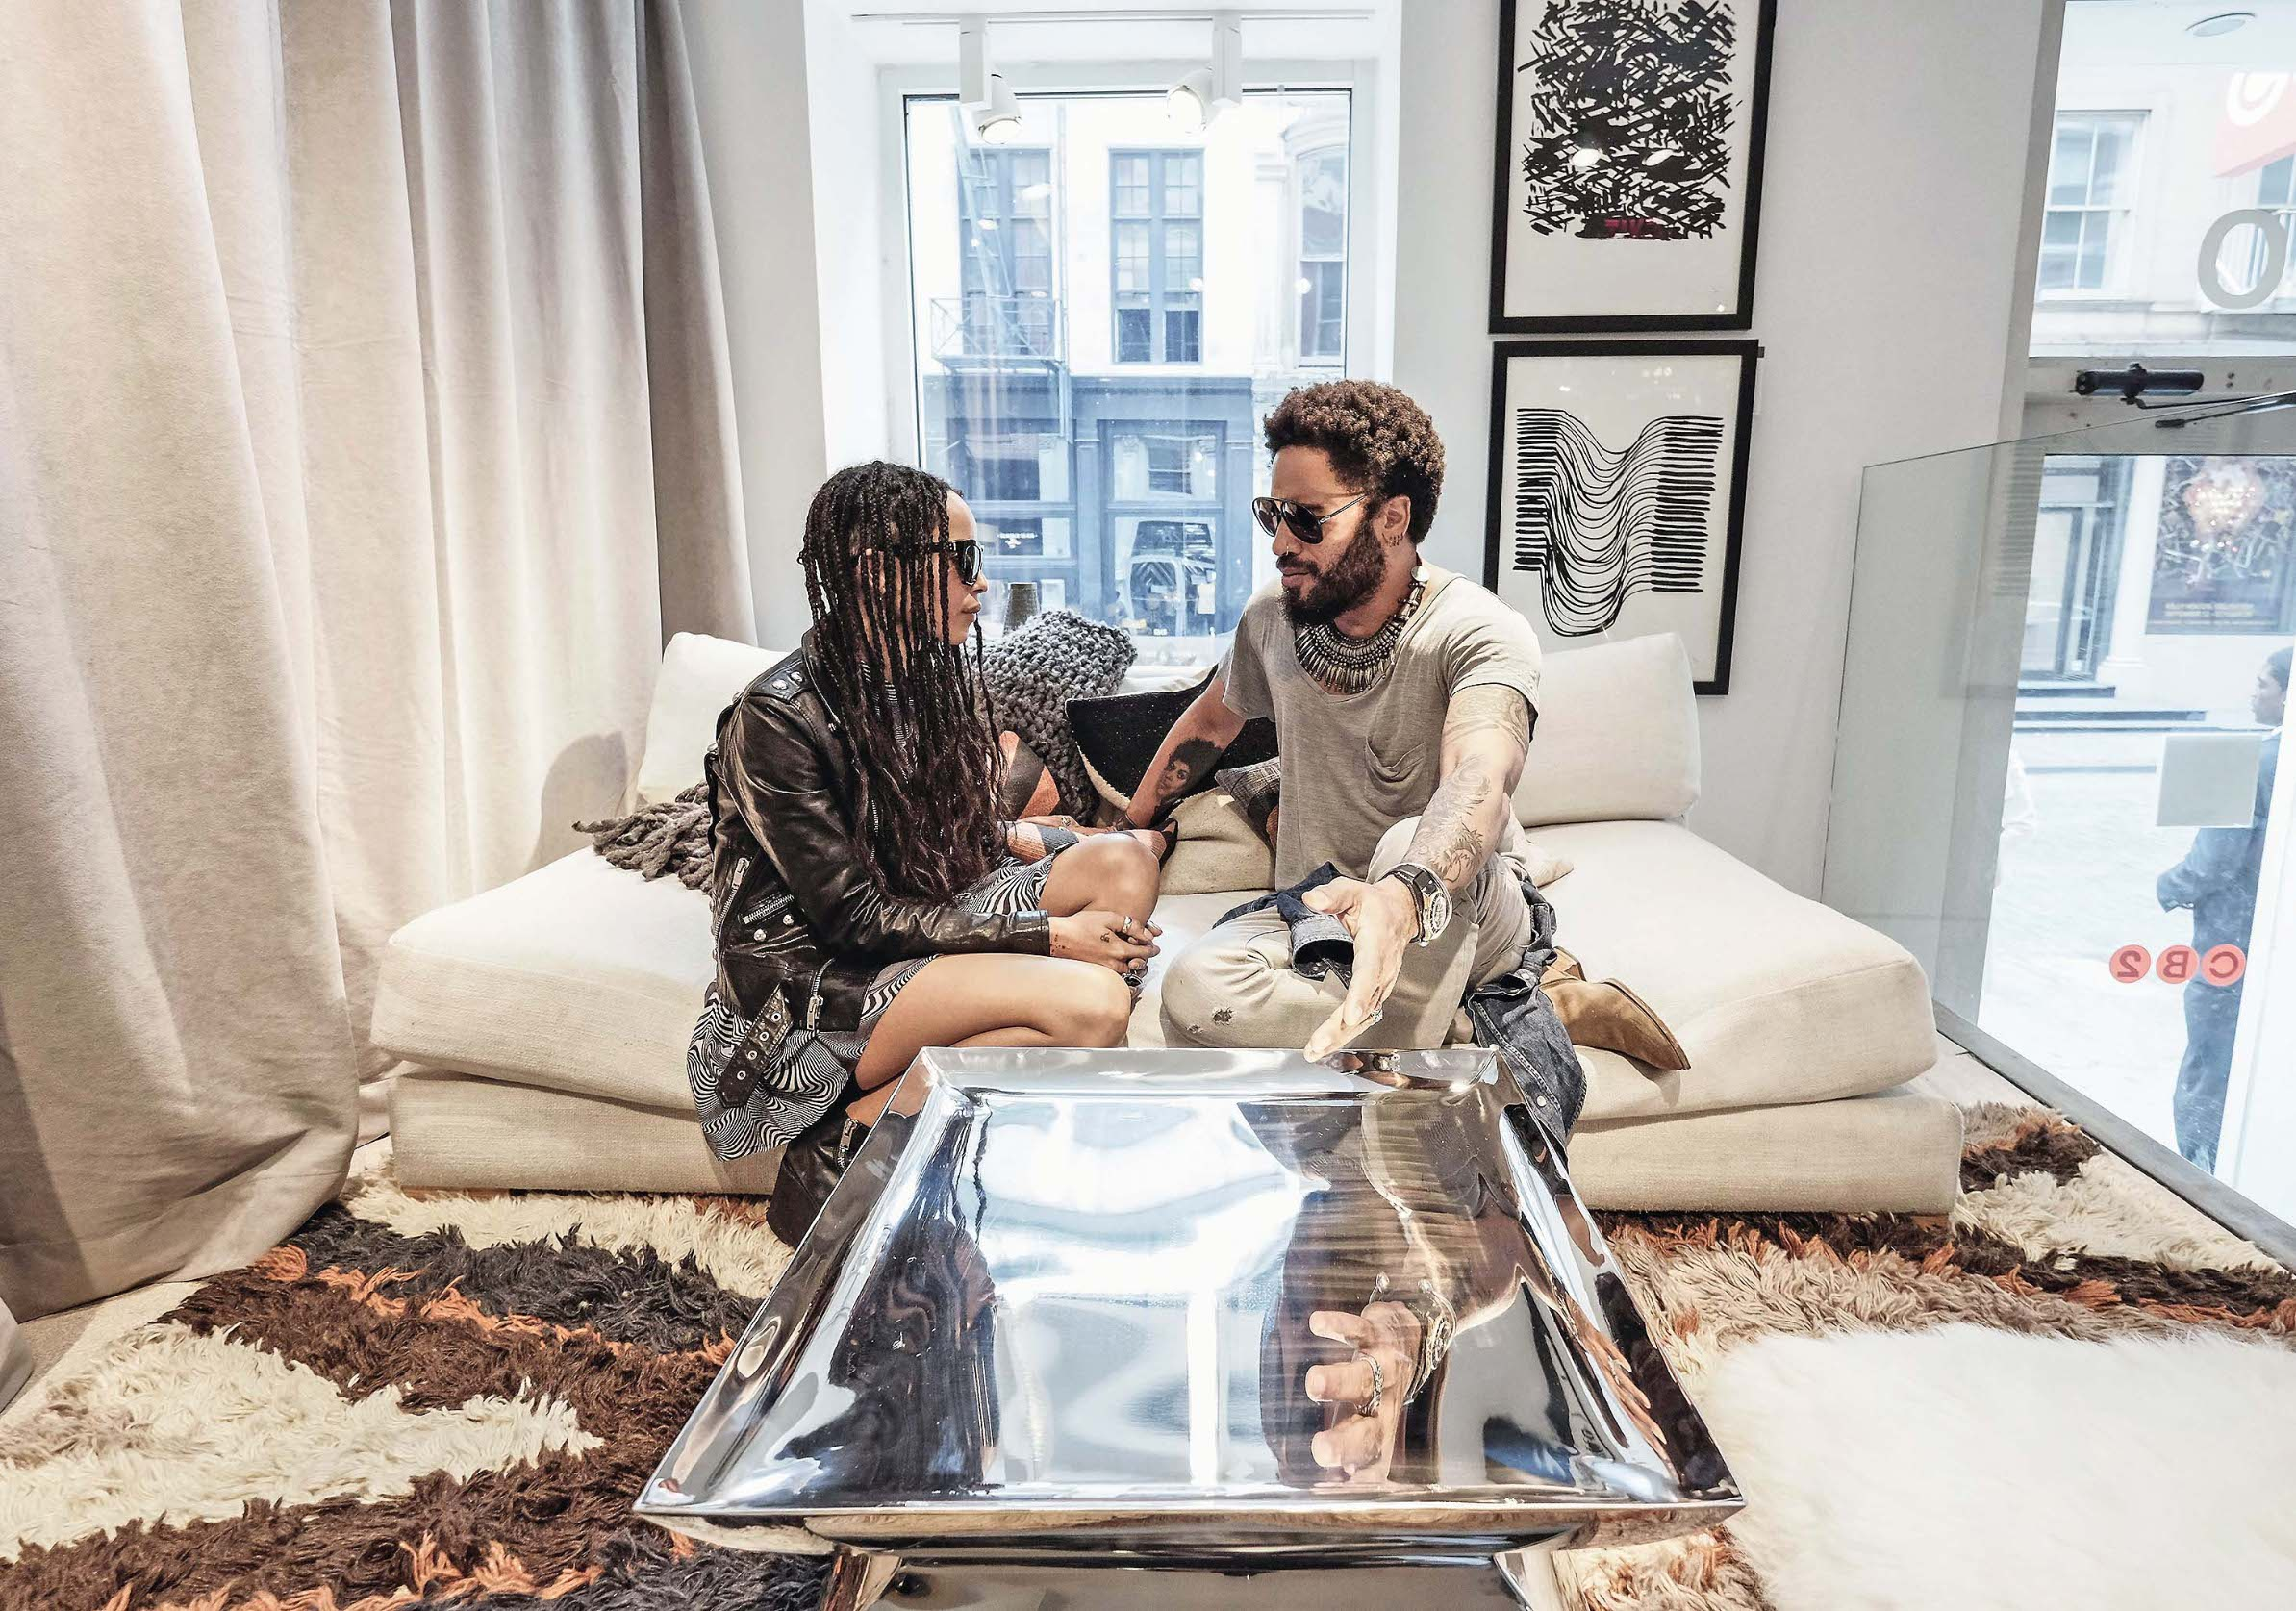 NEW YORK, NY - SEPTEMBER 22:  Lenny Kravitz is seen with his daughter Zoe Kravitz as he celebrates the launch of CB2 x Kravitz Design by Lenny Kravitz at the CB2 Soho store on September 22, 2015 in New York City.  (Photo by Dimitrios Kambouris/Getty Images for CB2)